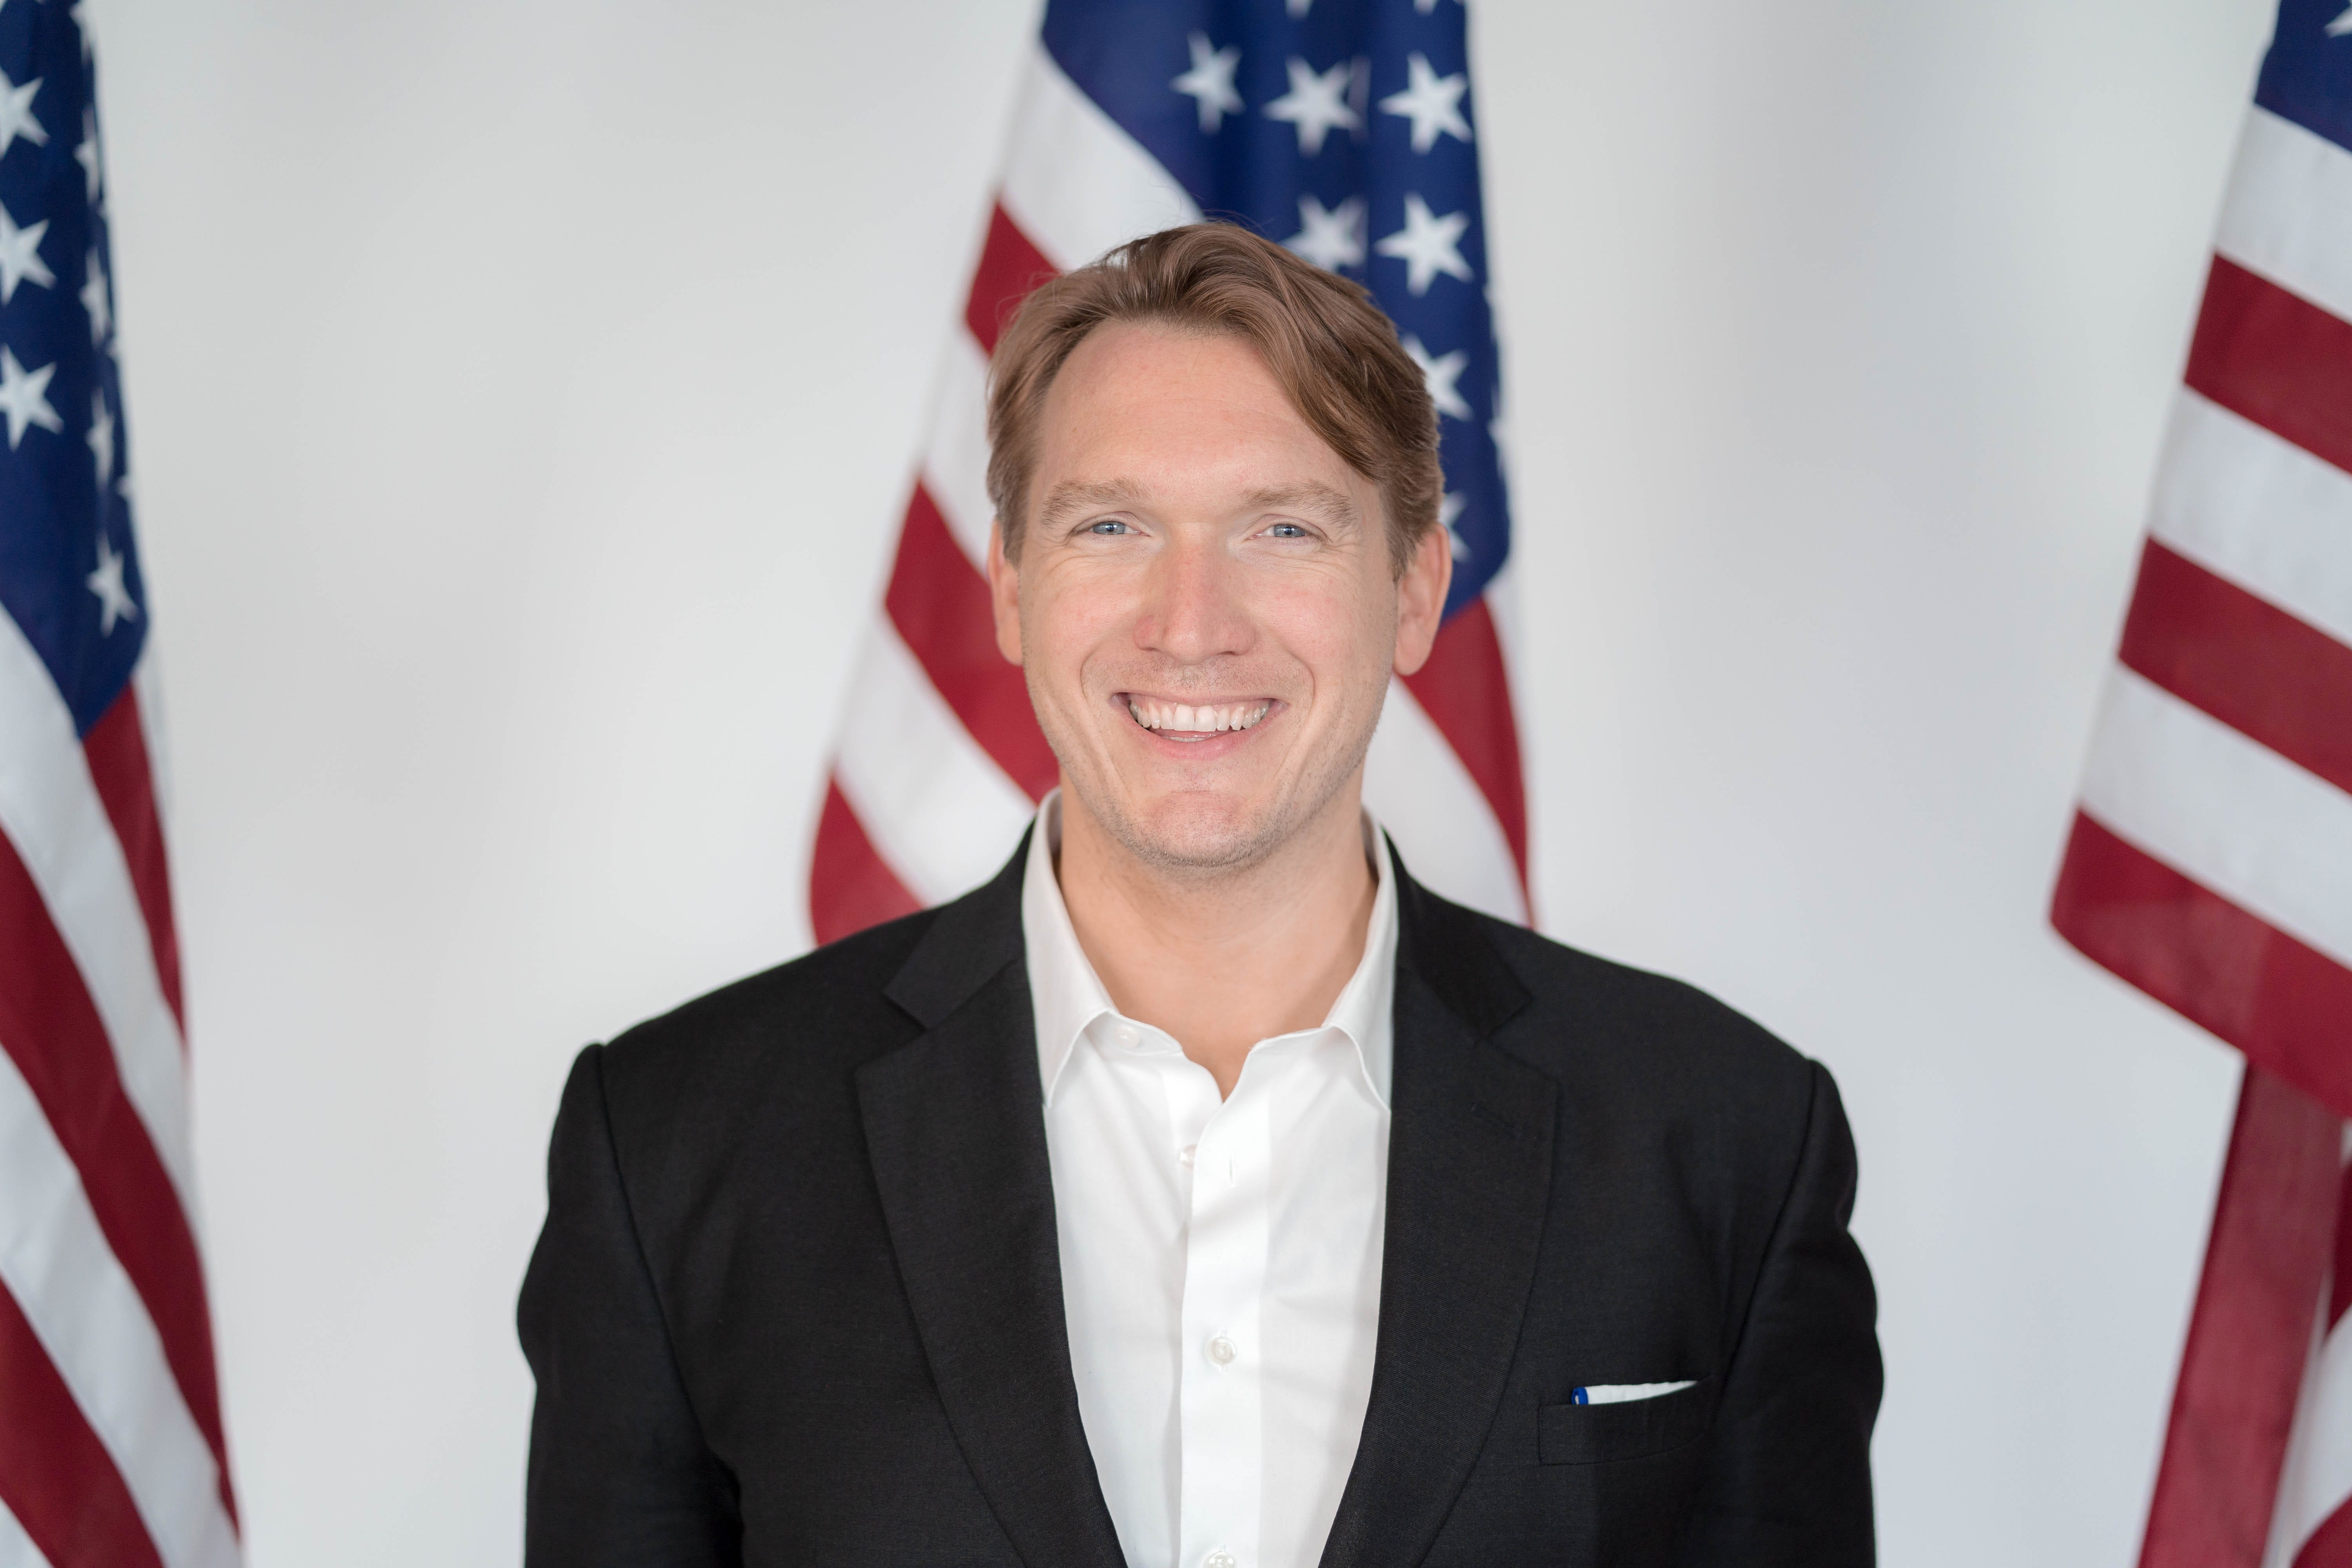 Nate McMurray, Democratic candidate for the 27th Congressional District.